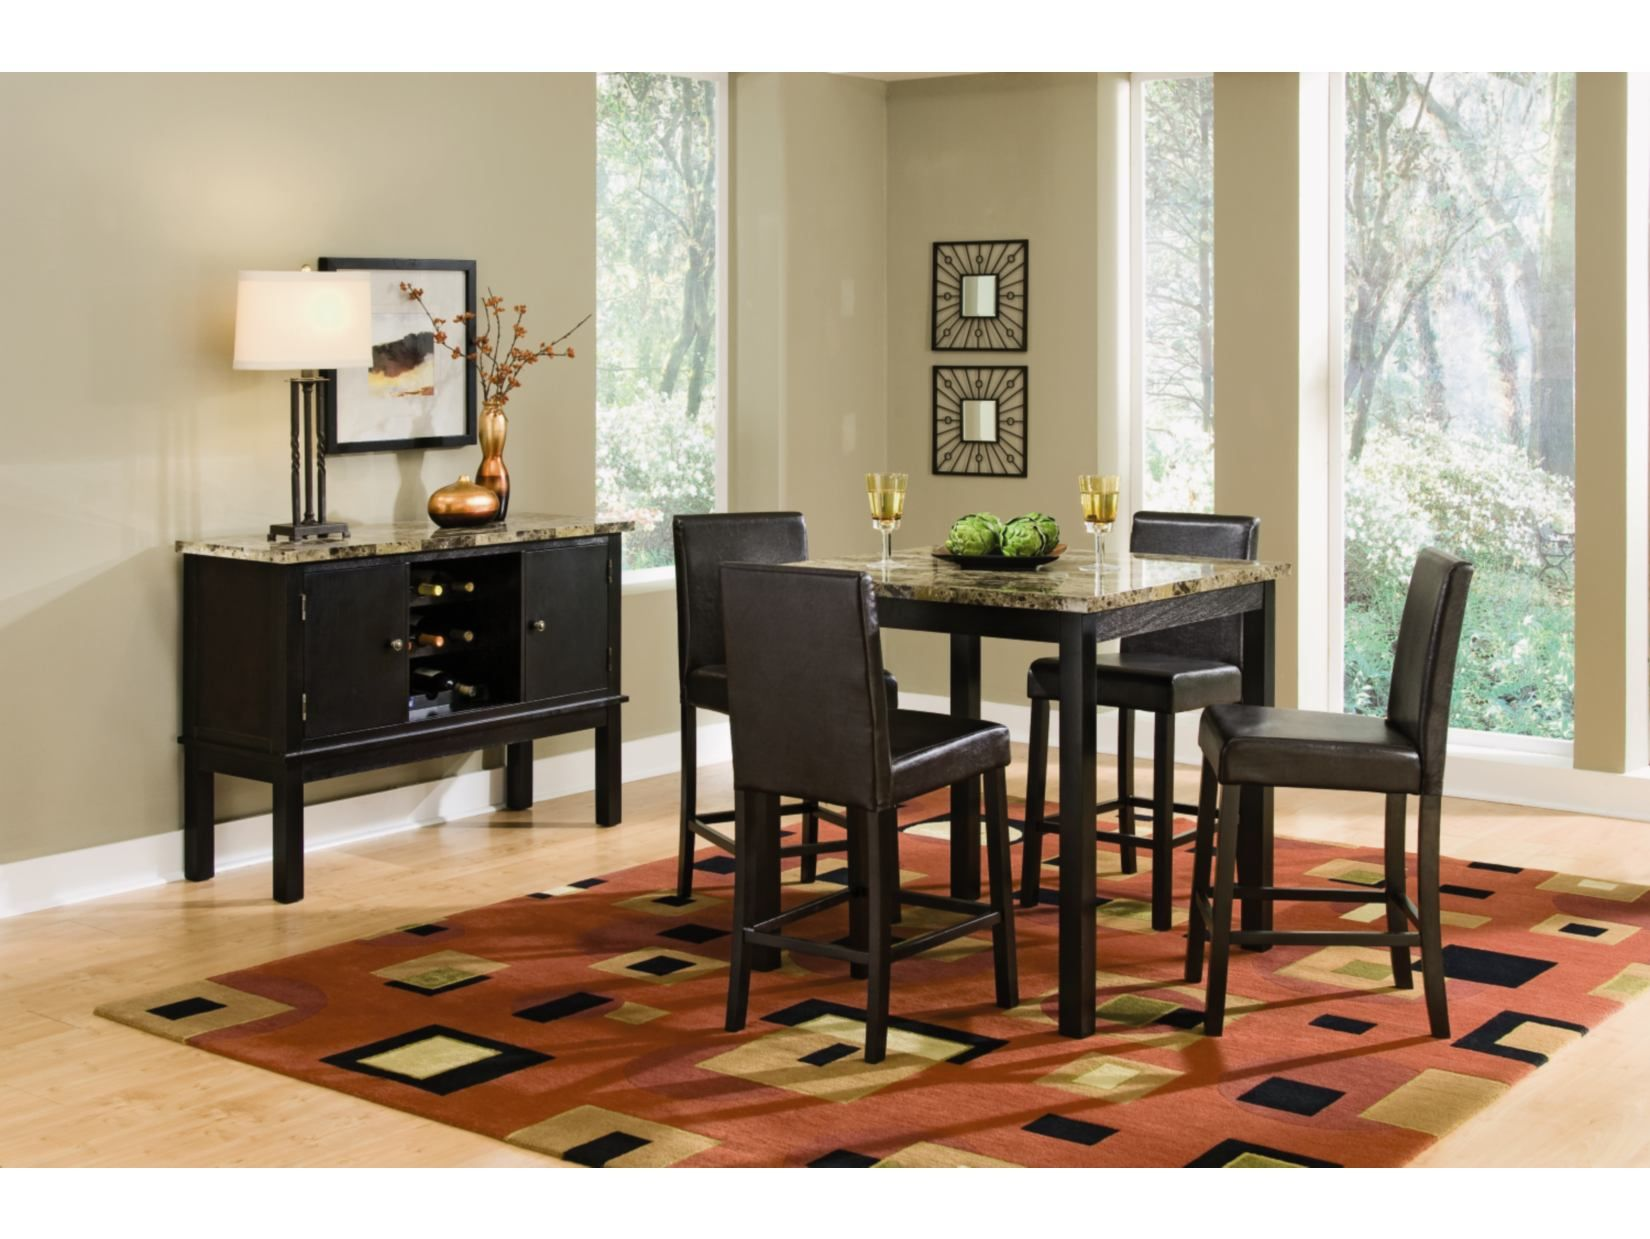 Miraculous Keystone 5 Pc Counter Height Dinette Value City Furniture Ibusinesslaw Wood Chair Design Ideas Ibusinesslaworg